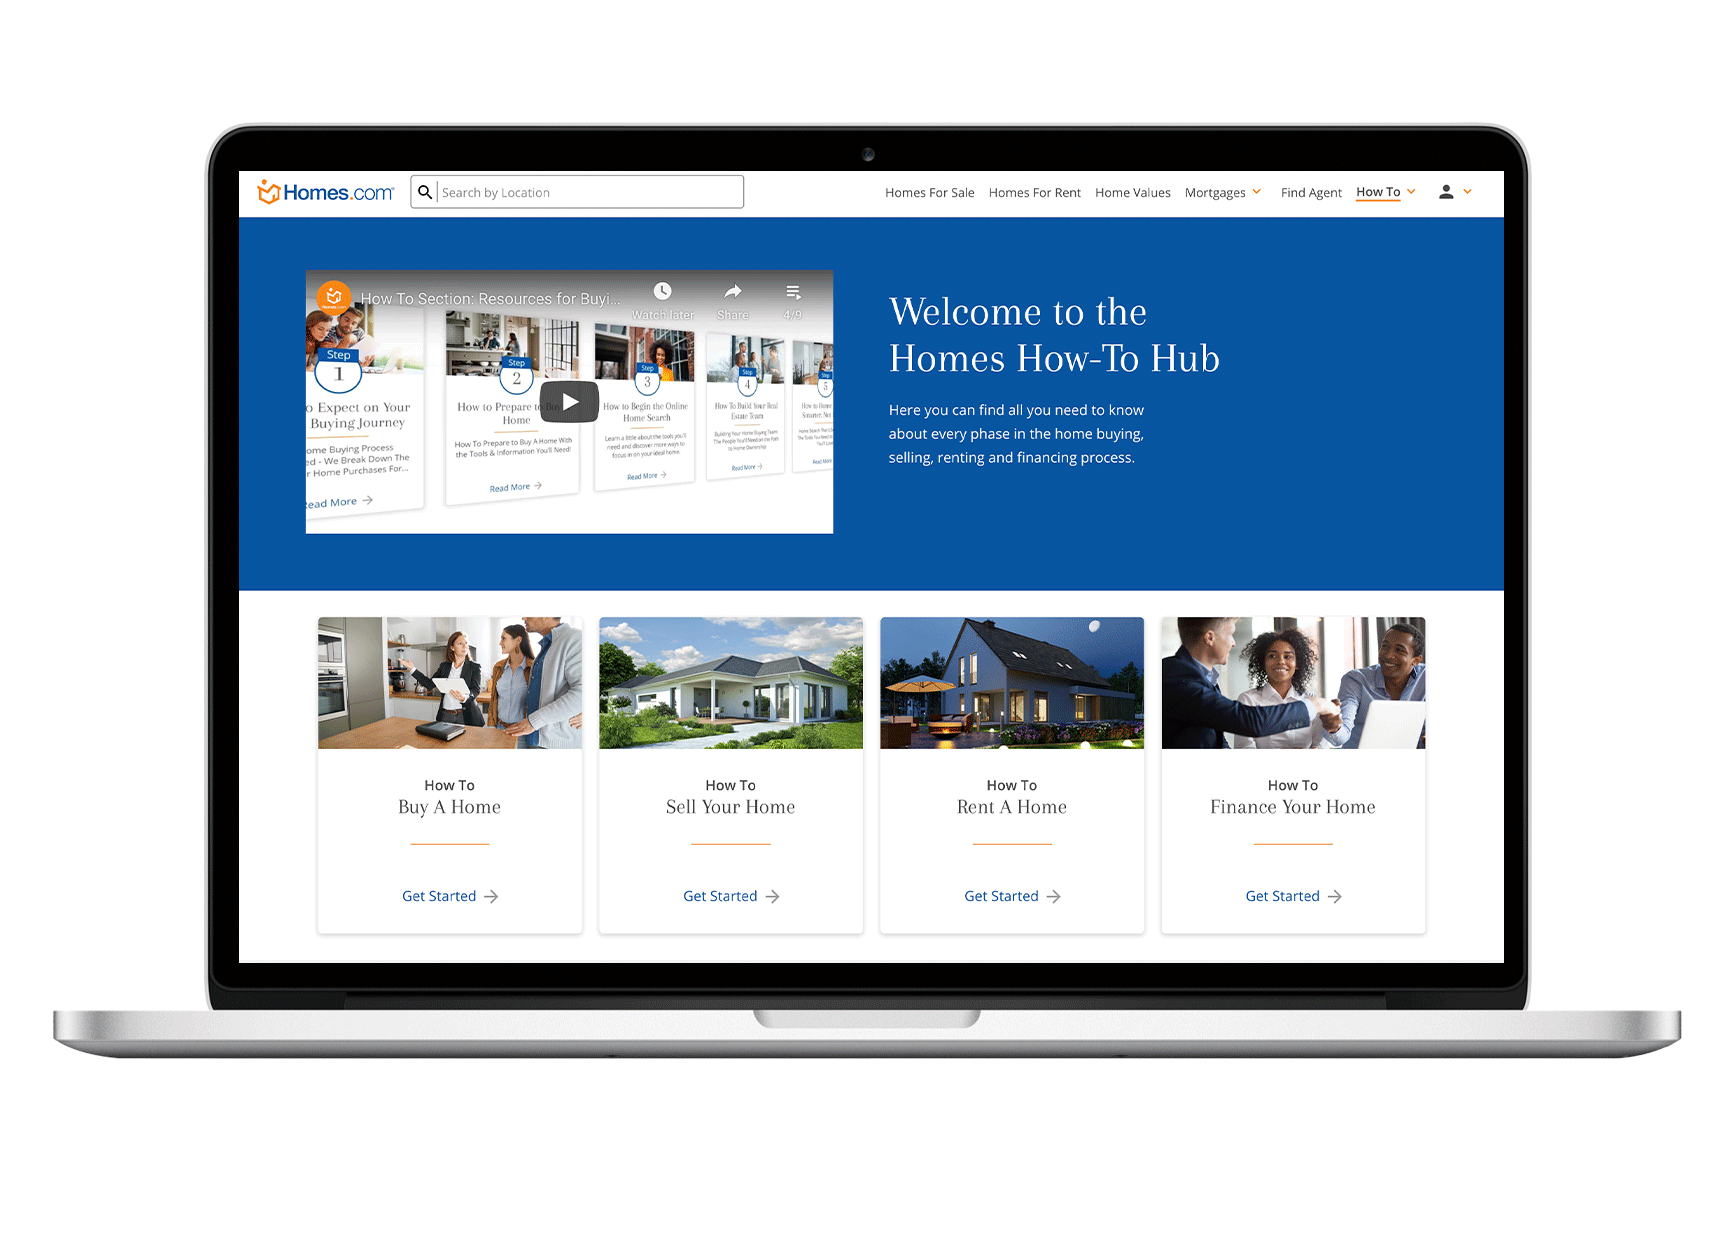 New Opportunities at Homes.com